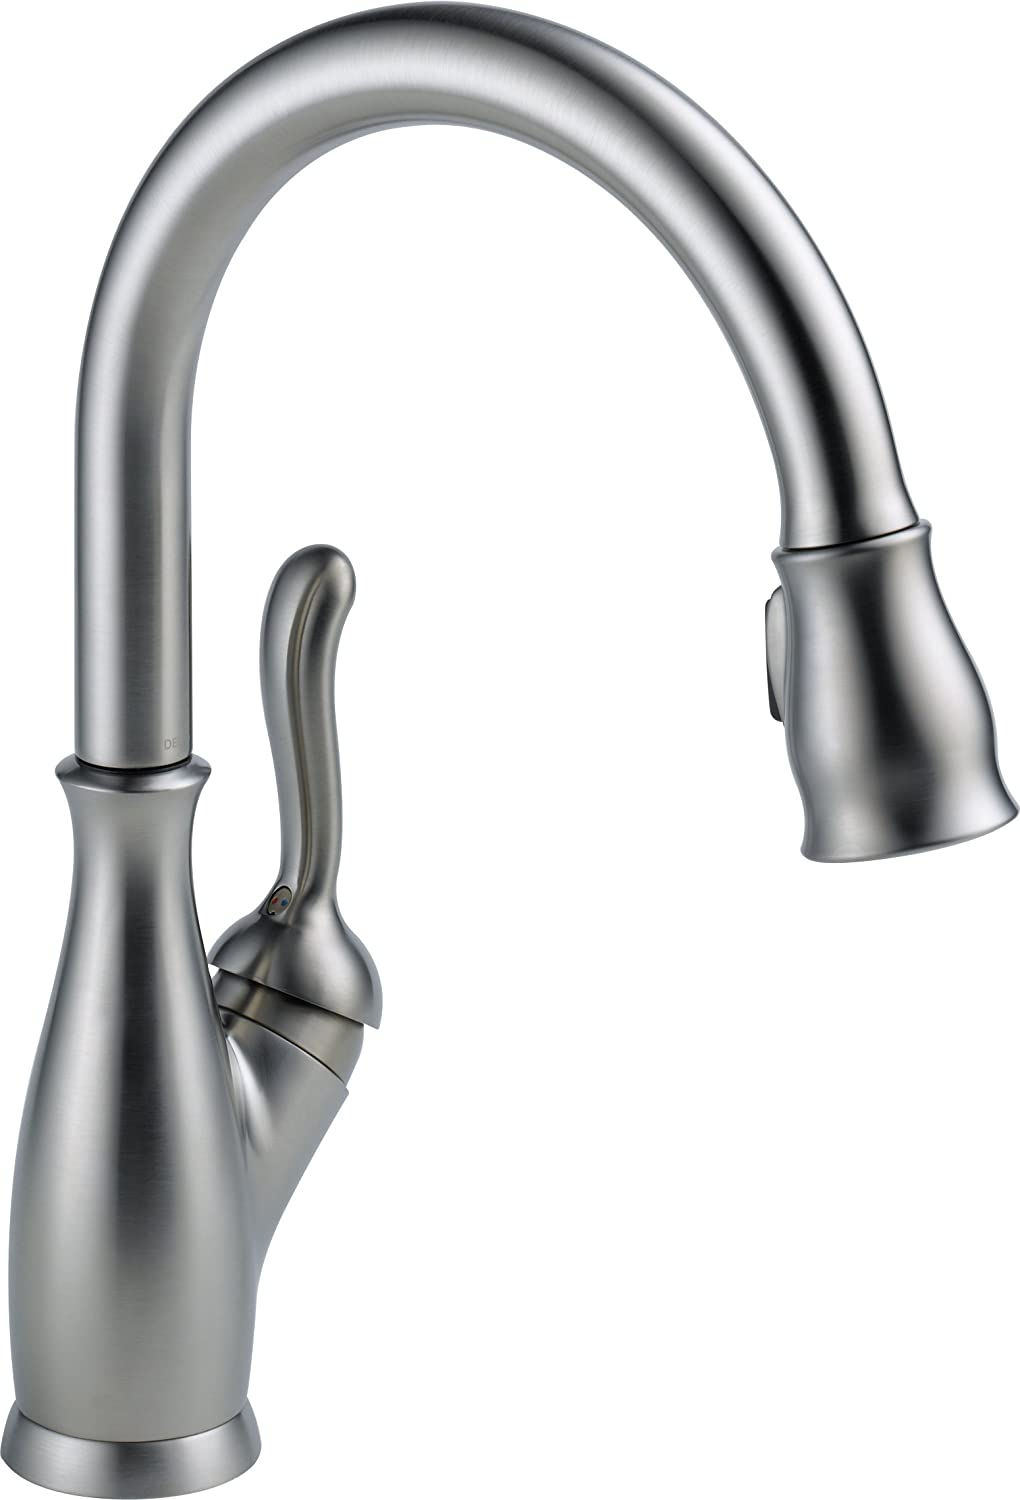 BFSAK replacement kitchen faucet head Delta Faucet AR DST Leland Single Handle Pull Down Kitchen Faucet with Magnetic Docking Arctic Stainless Touch On Kitchen Sink Faucets Amazon com